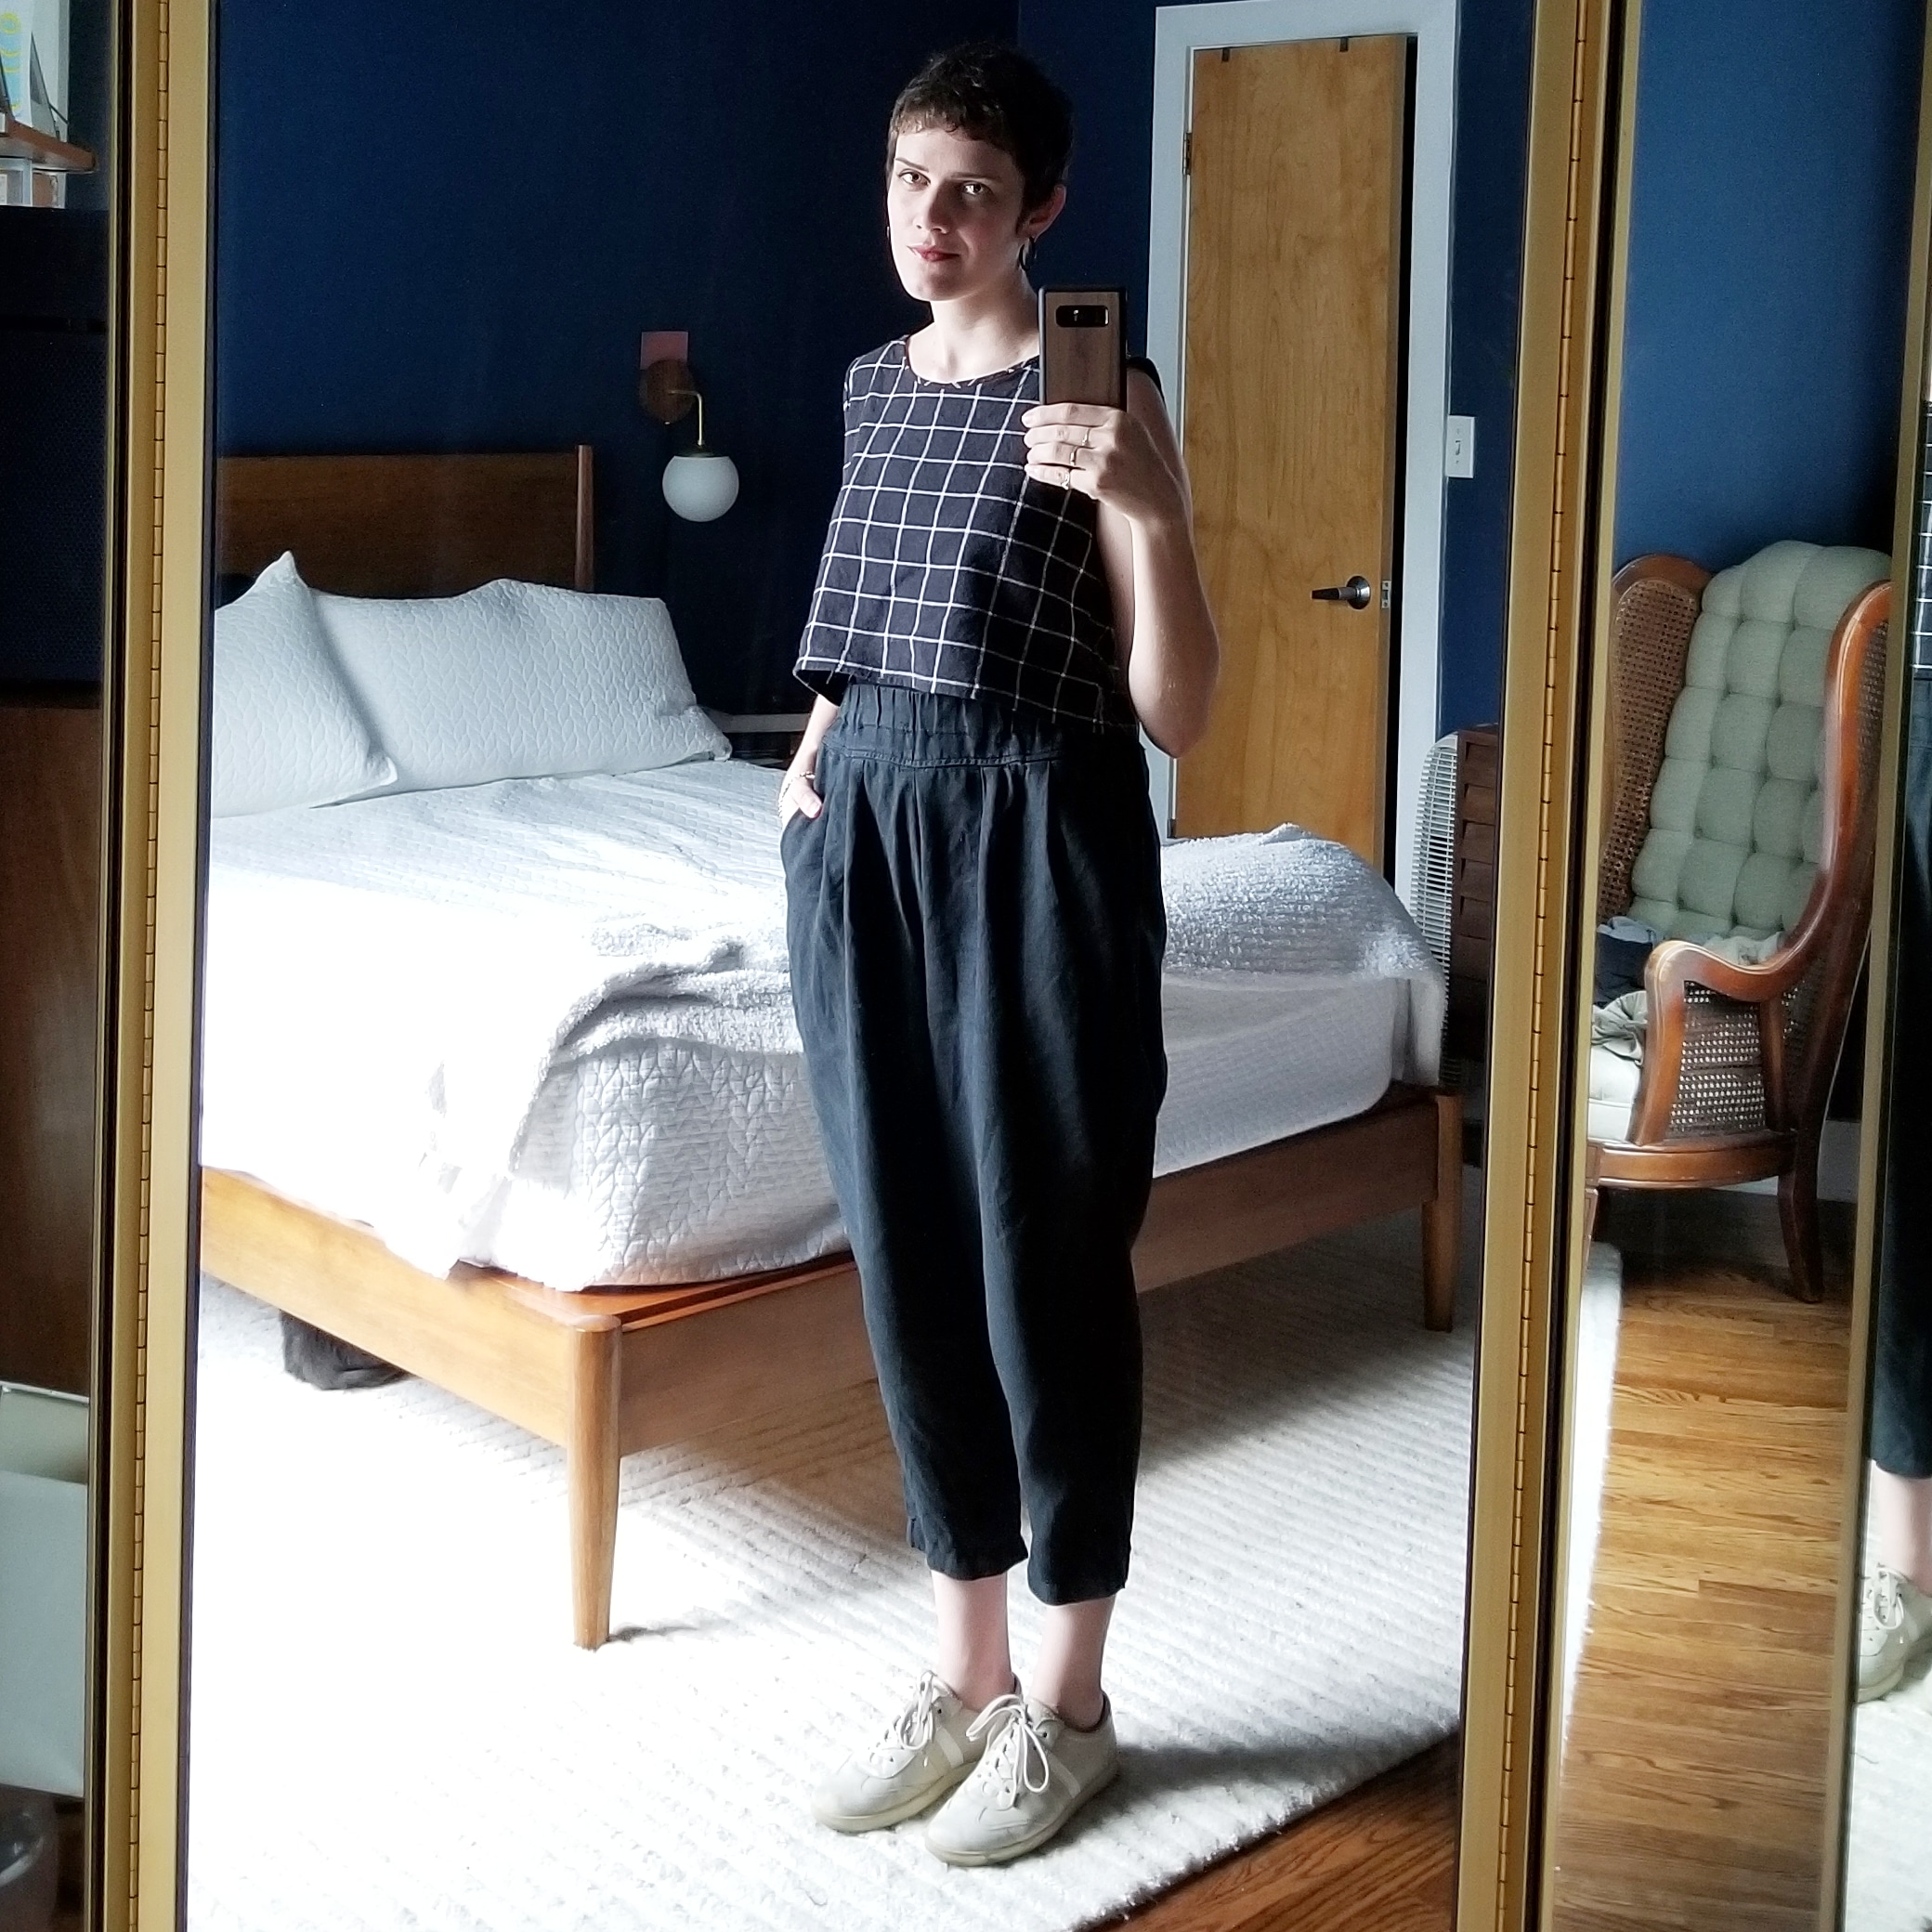 Tuesday - July 24, 2018Day two of Black Crane pants! Paired today with my me-made top. This top, made hastily the night before a 10-day vacation, has quickly made itself indispensable in my wardrobe. It's not perfect but I still love how it fits and wears! It is the perfect length to go with all my high-waisted stuff. A nice change from tucking everything in.